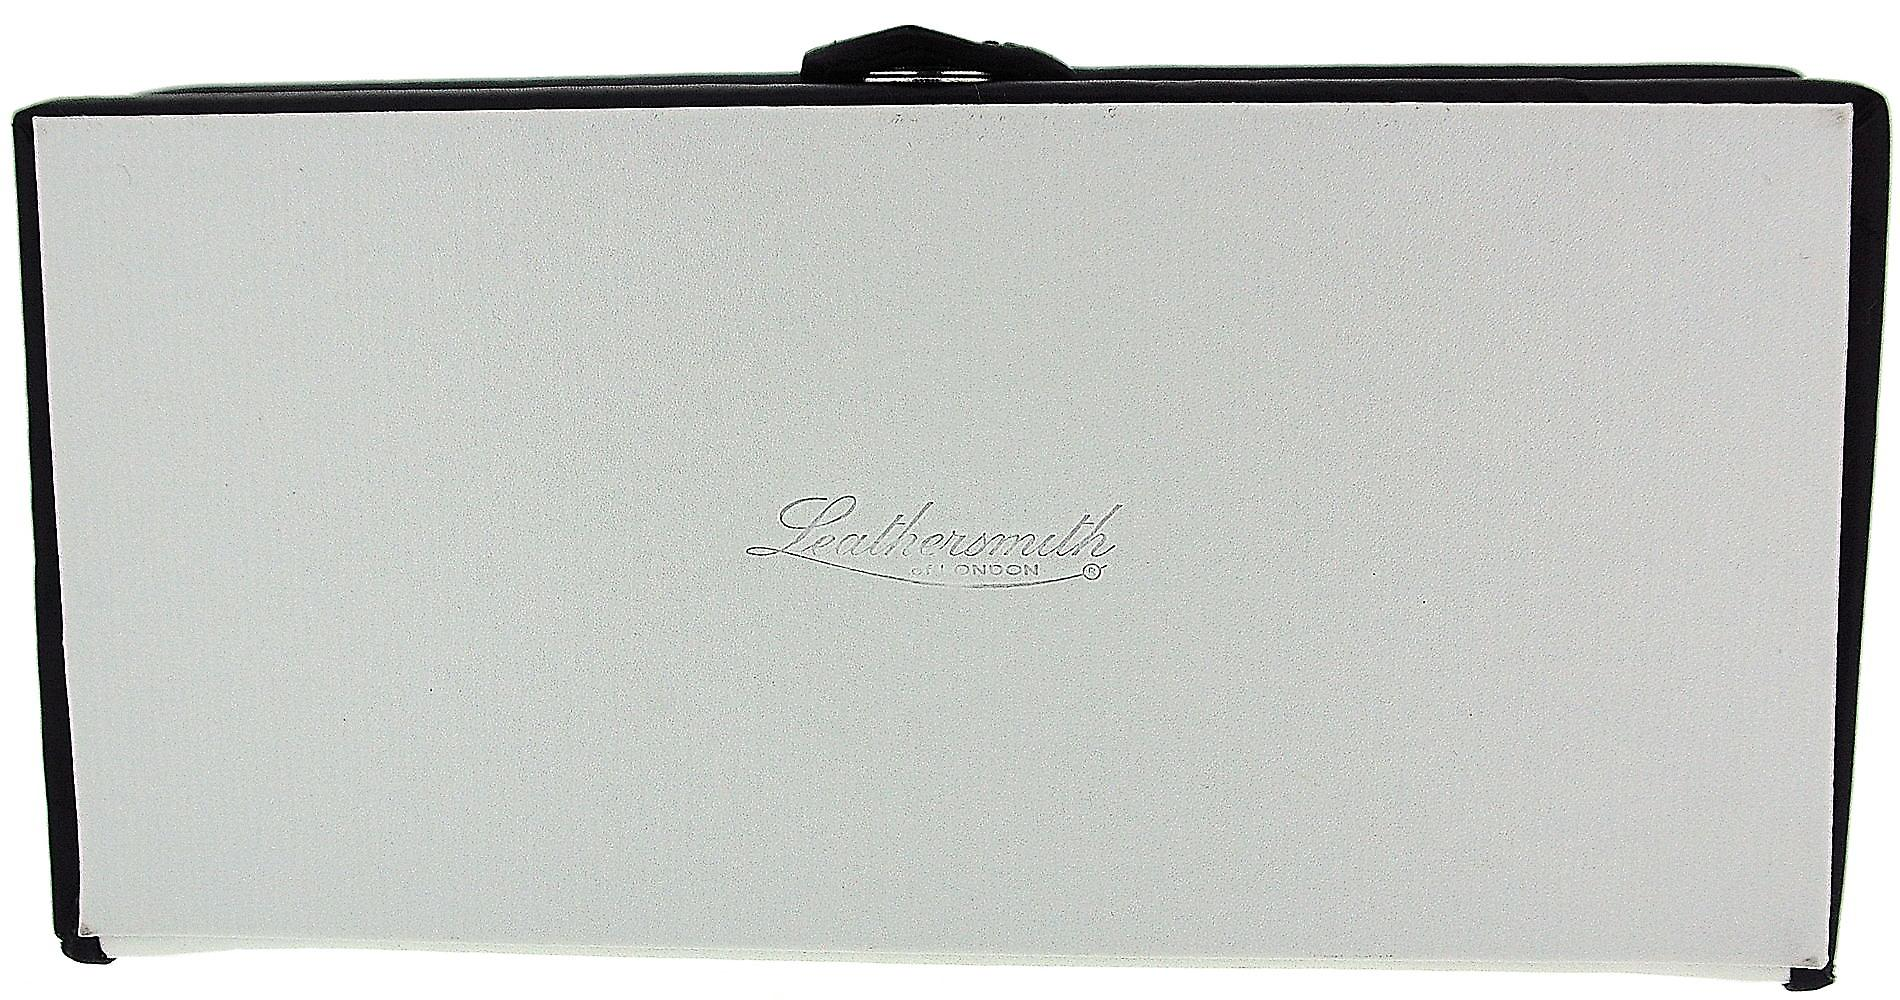 Mele Unisex White With Black Trim 8 Compartment Bonded Leather Jewellery Case